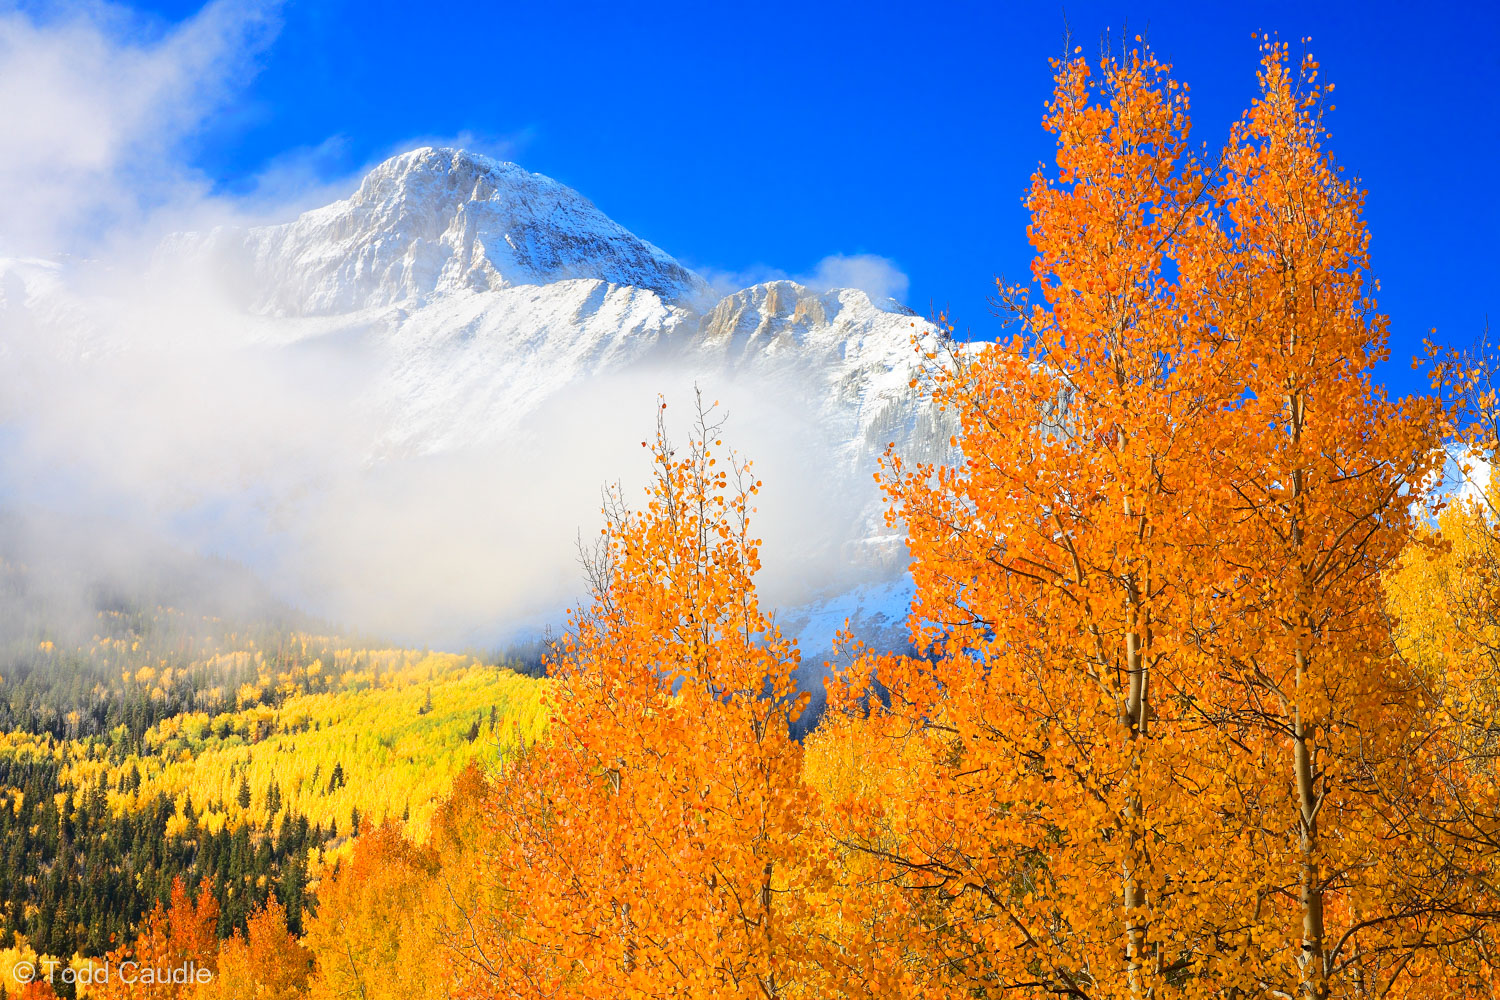 Everyone is familiar with the beautiful golden yellow that Colorado's aspens typically turn in the fall. While somewhat rare...